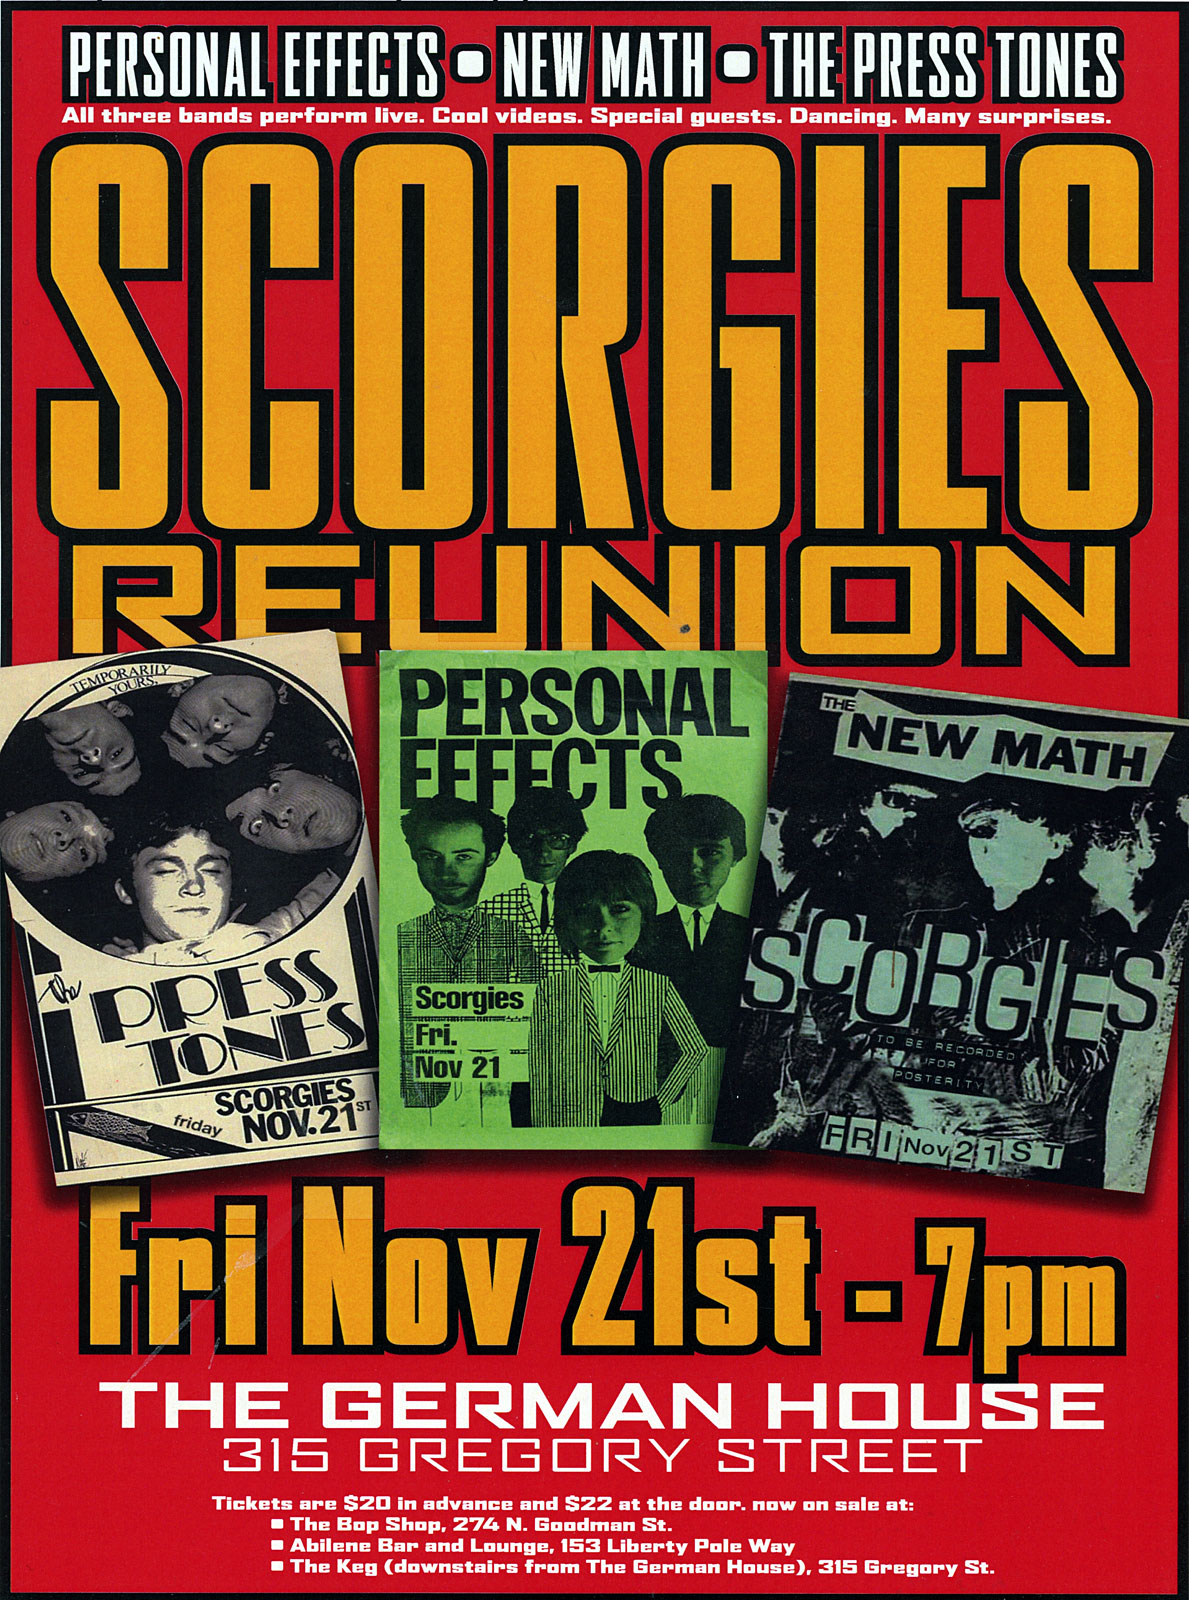 Poster for Scorgie's Reunion Concert at the German House in Rochester, New York in 2008. Show featured The Presstones, New Math and Personal Effects.